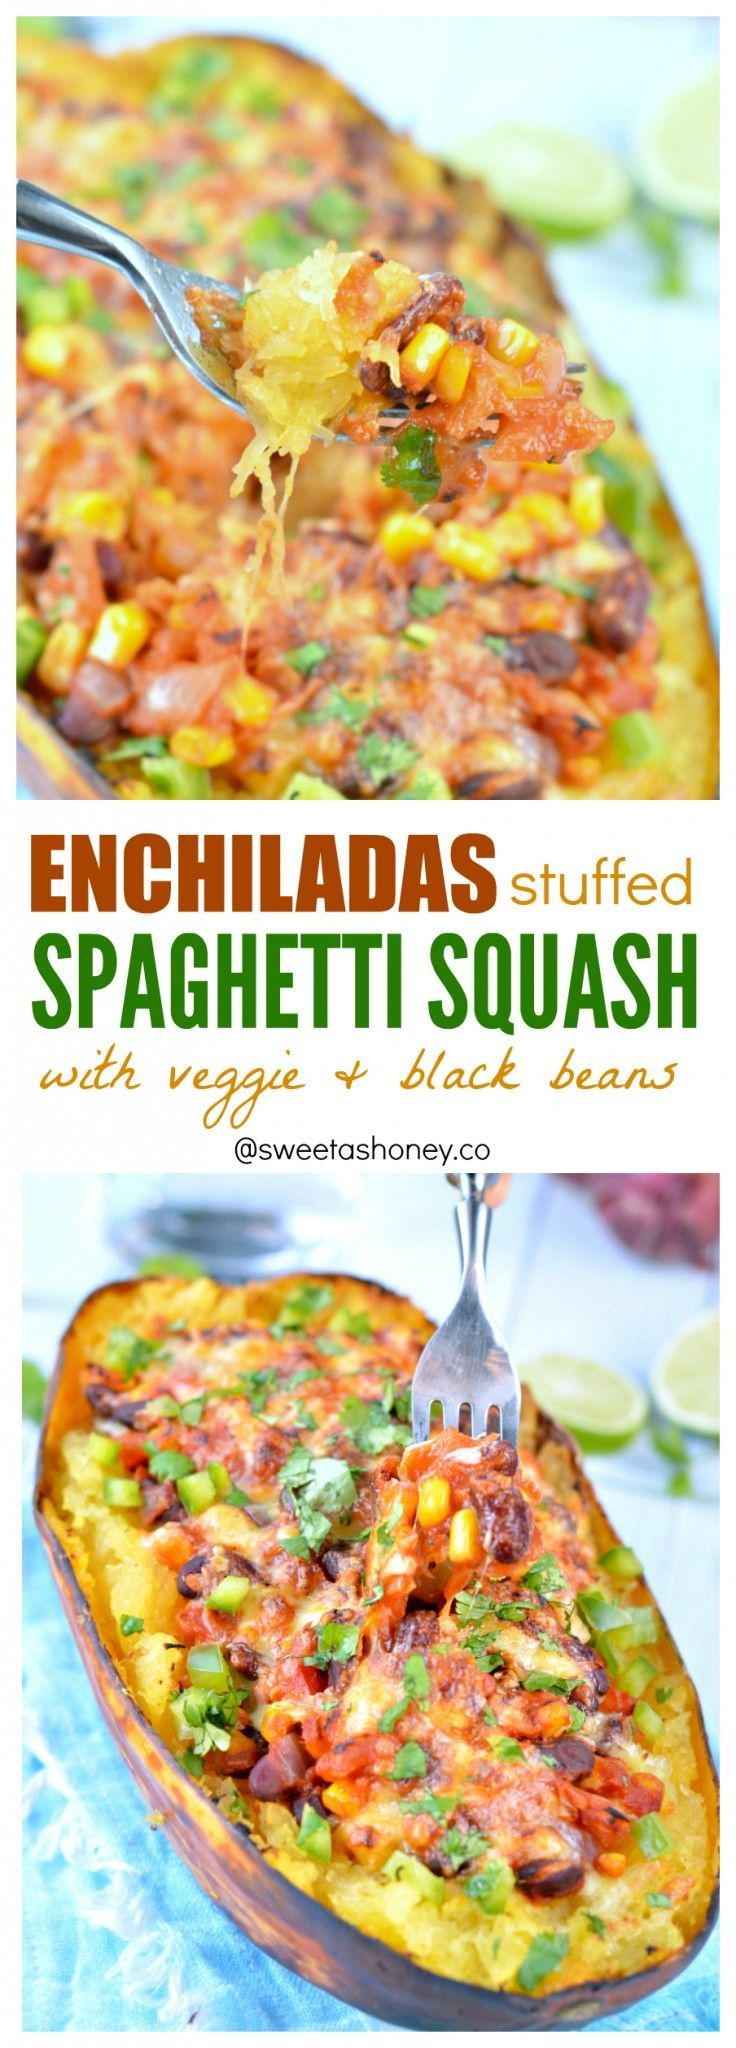 Vegetarian enchiladas stuffed spaghetti squash recipe | You won't miss the tortillas wrap. A great easy clean eating recipe to cut the carbs and enjoy healthy Mexican food. Gluten free dinner, Vegan spaghetti squash option provided.